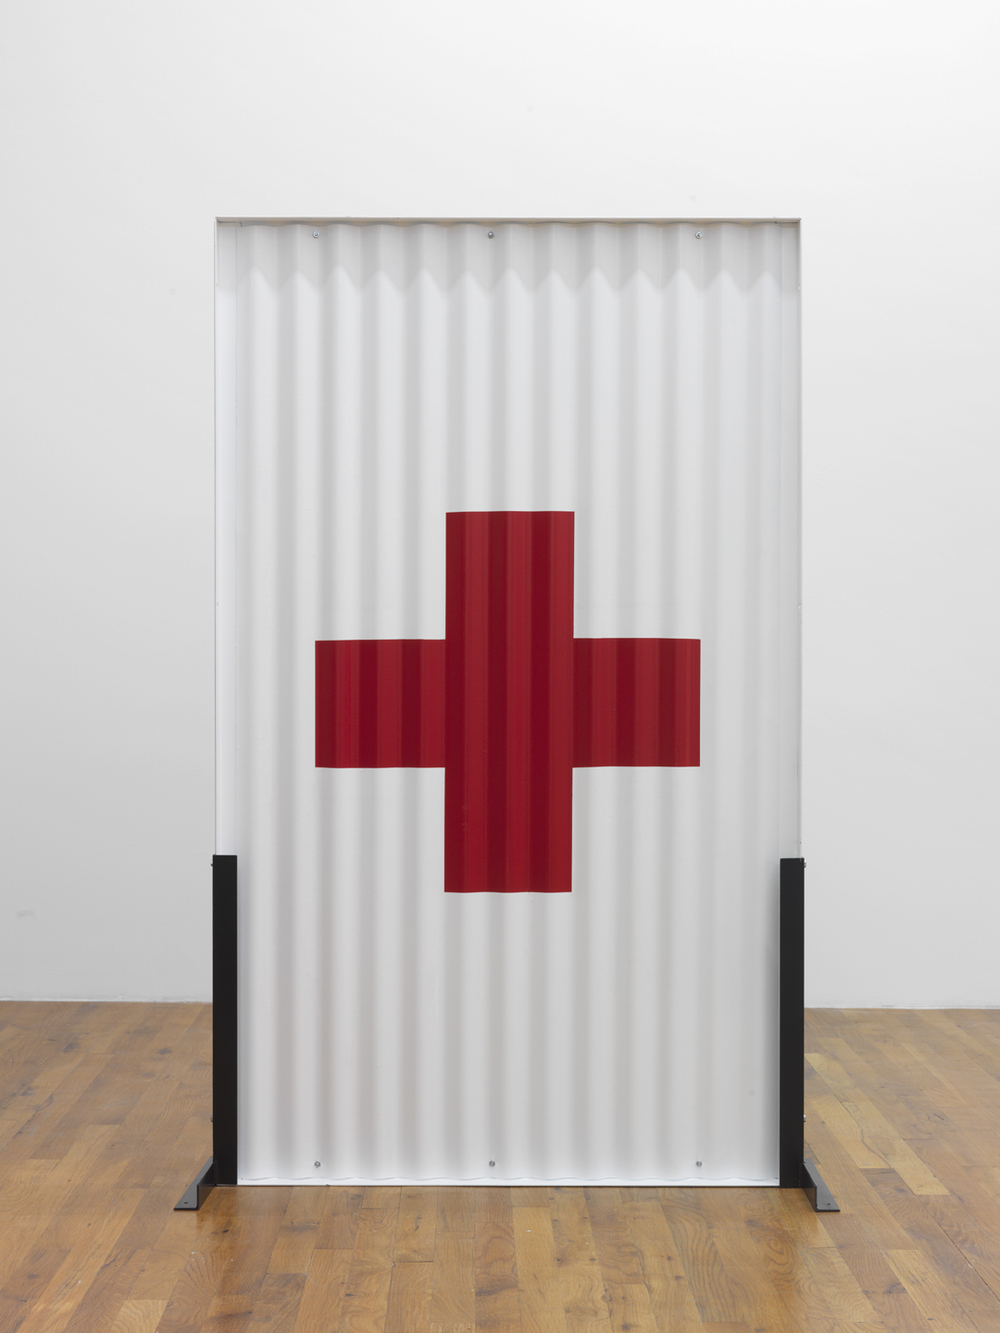 Standing Partition (red cross  )   2013 Steel, Hardware, Poly-acrylic paint 60 x 36 x 16 inches